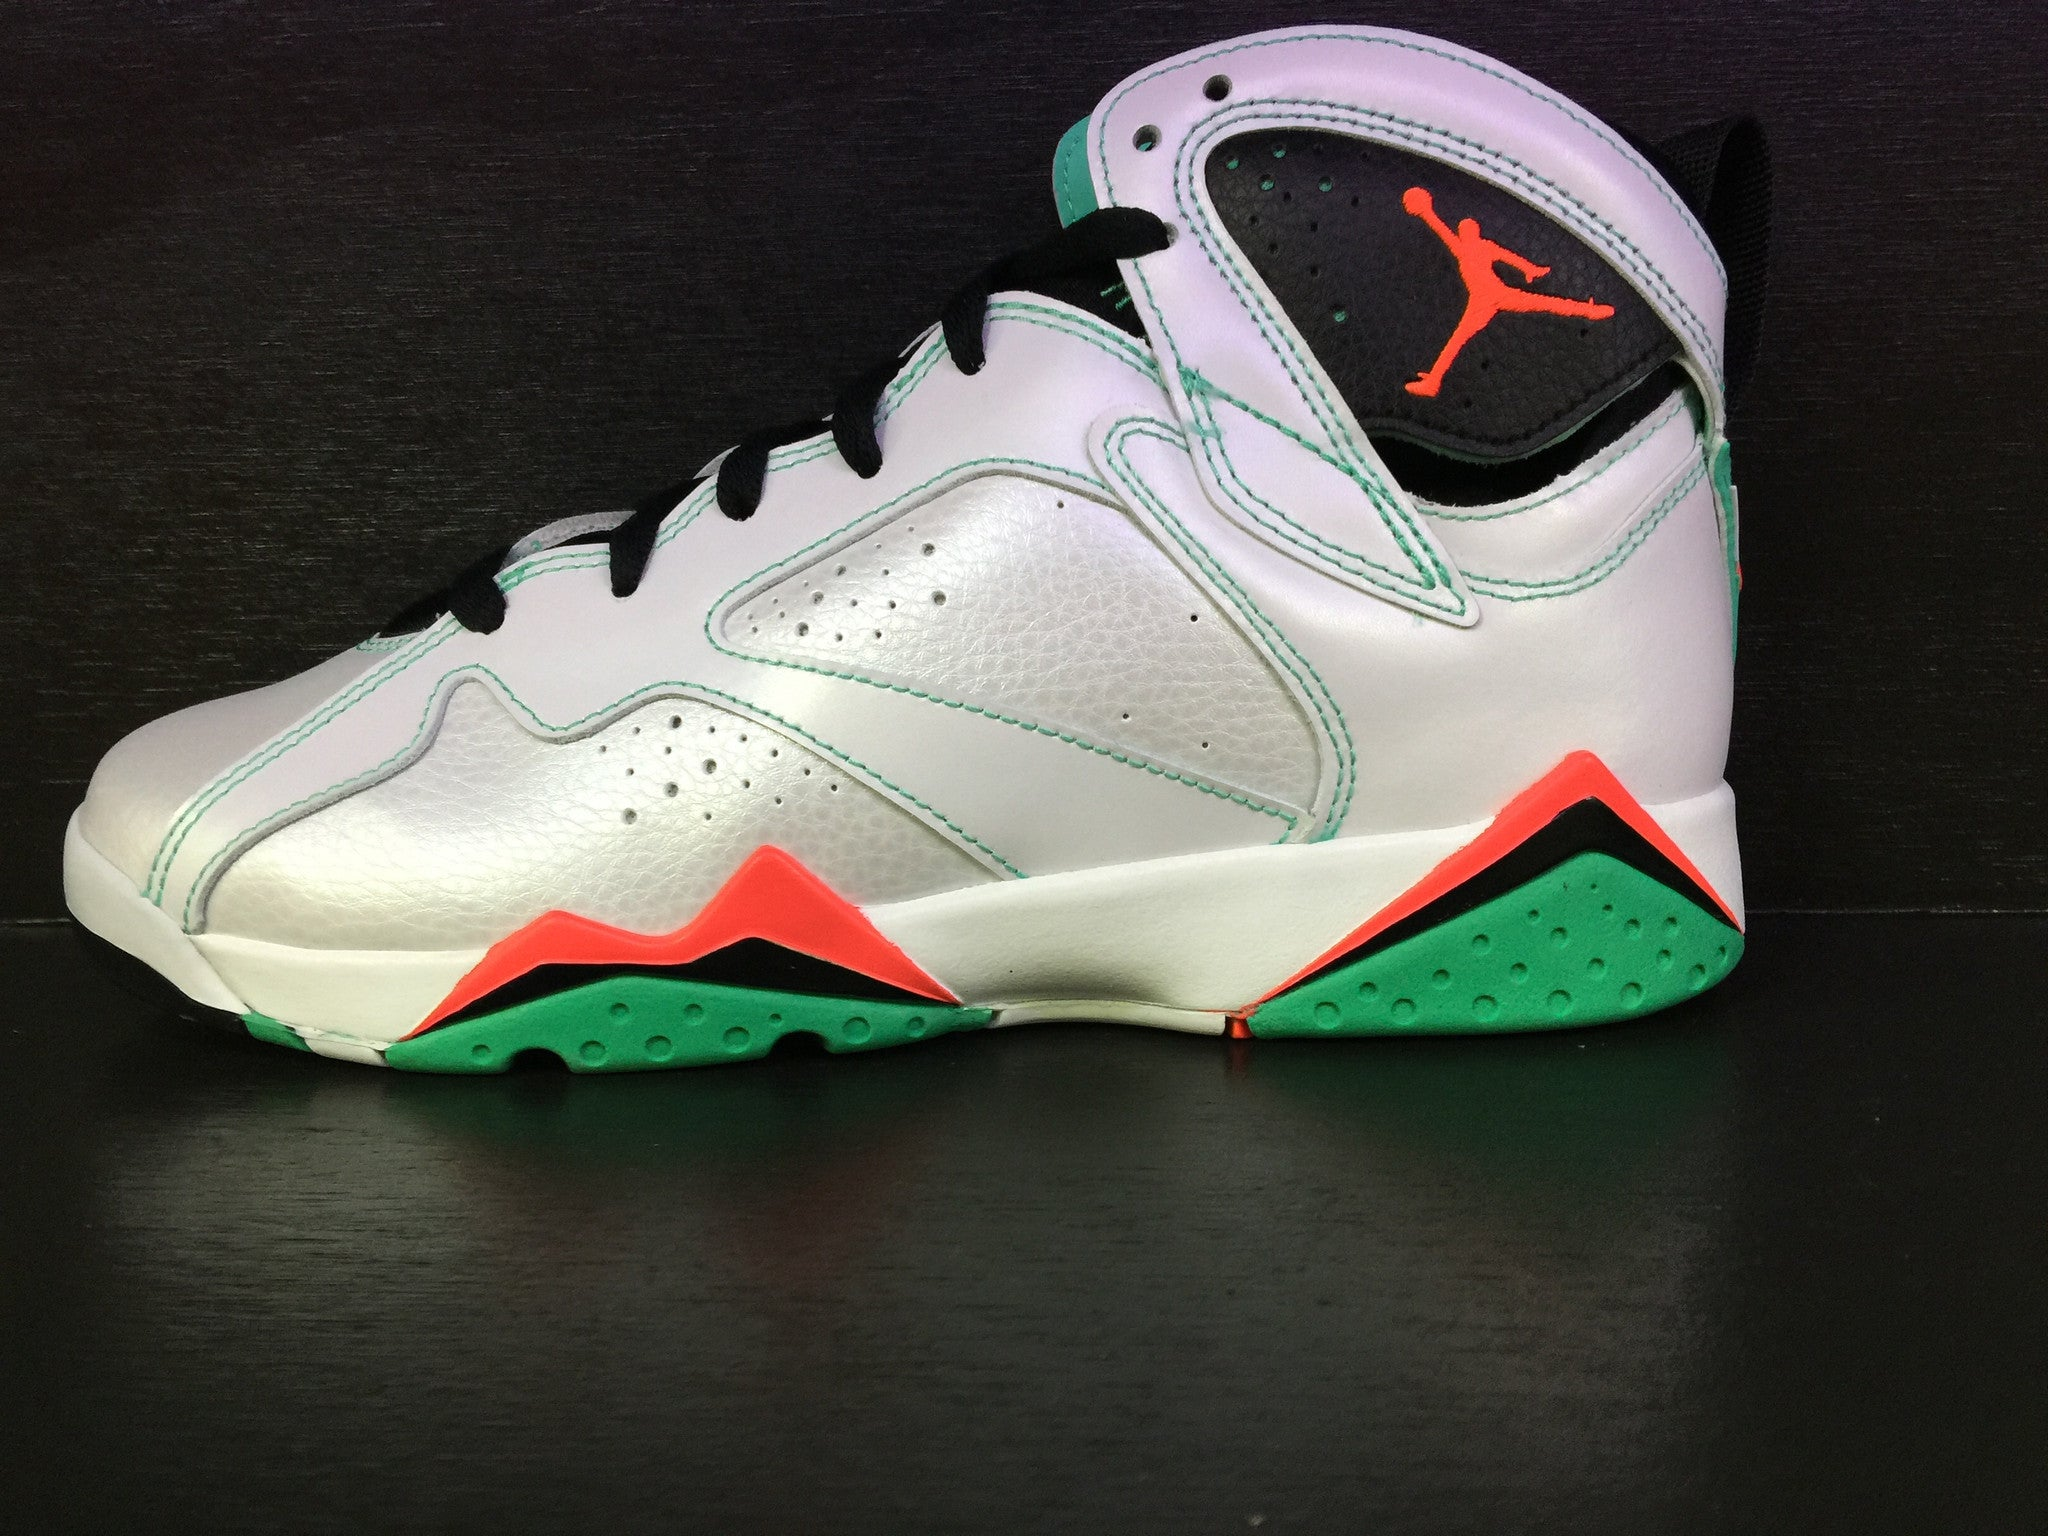 Air Jordan 7 Retro 'Marvin The Martian Reverse' Girls